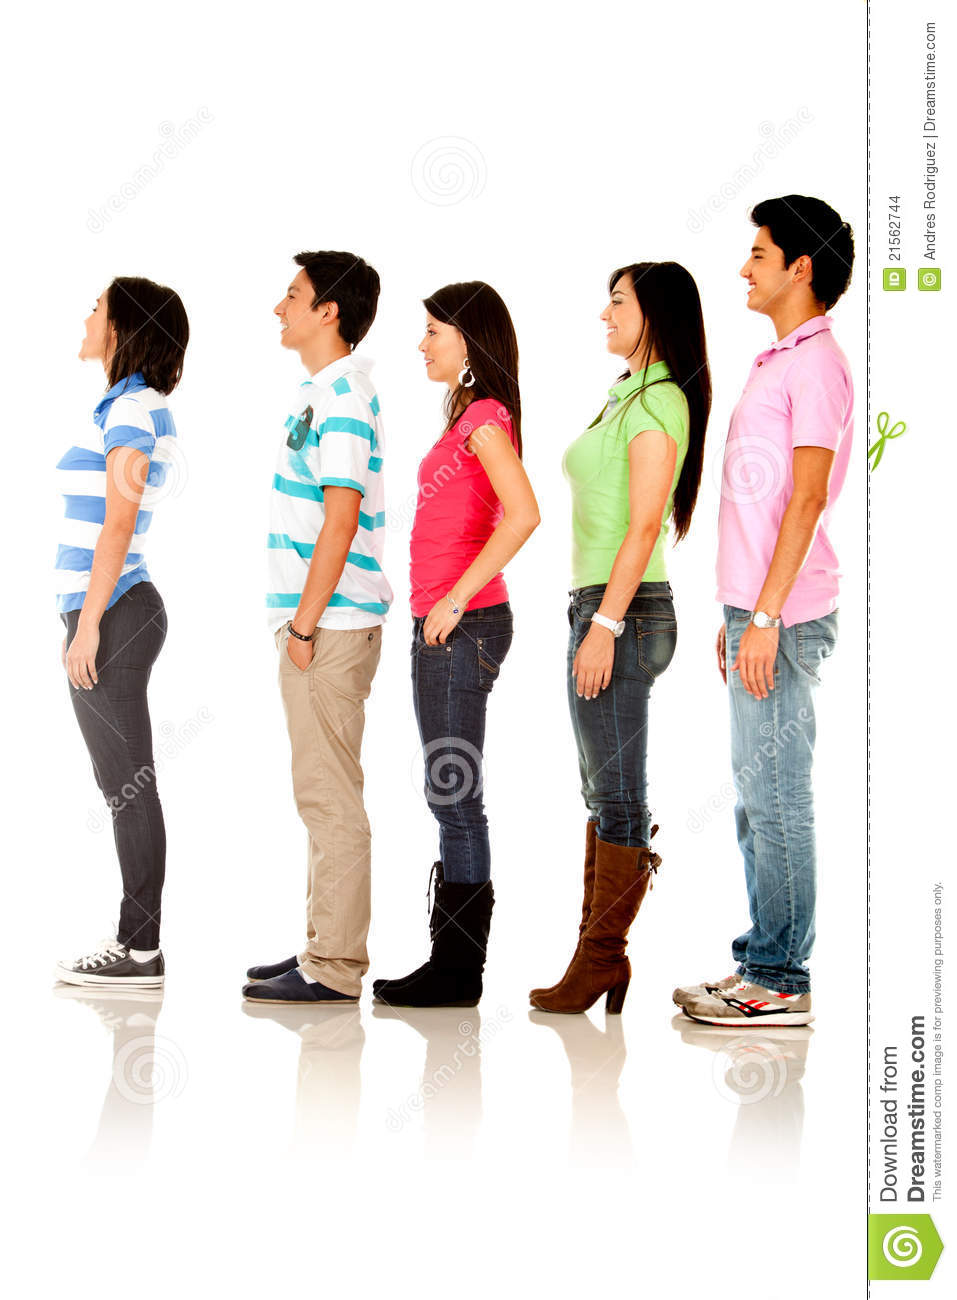 Casual people queuing stock photo. Image of wait, white ...